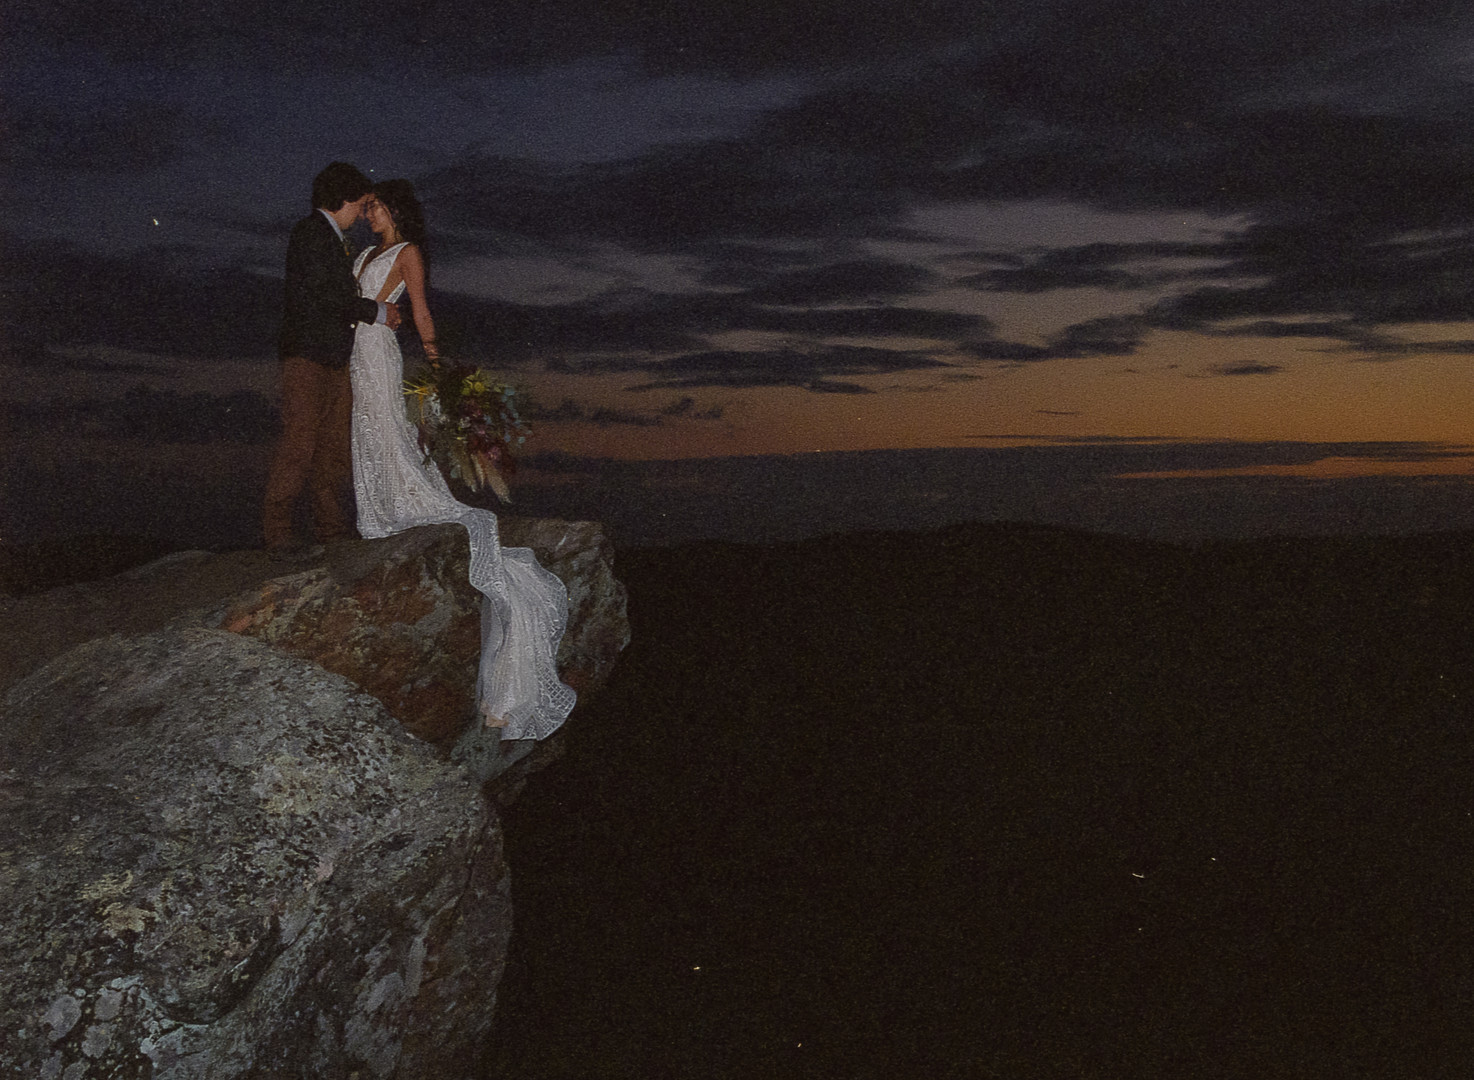 Bride and Groom eloping on the edge of a cliff